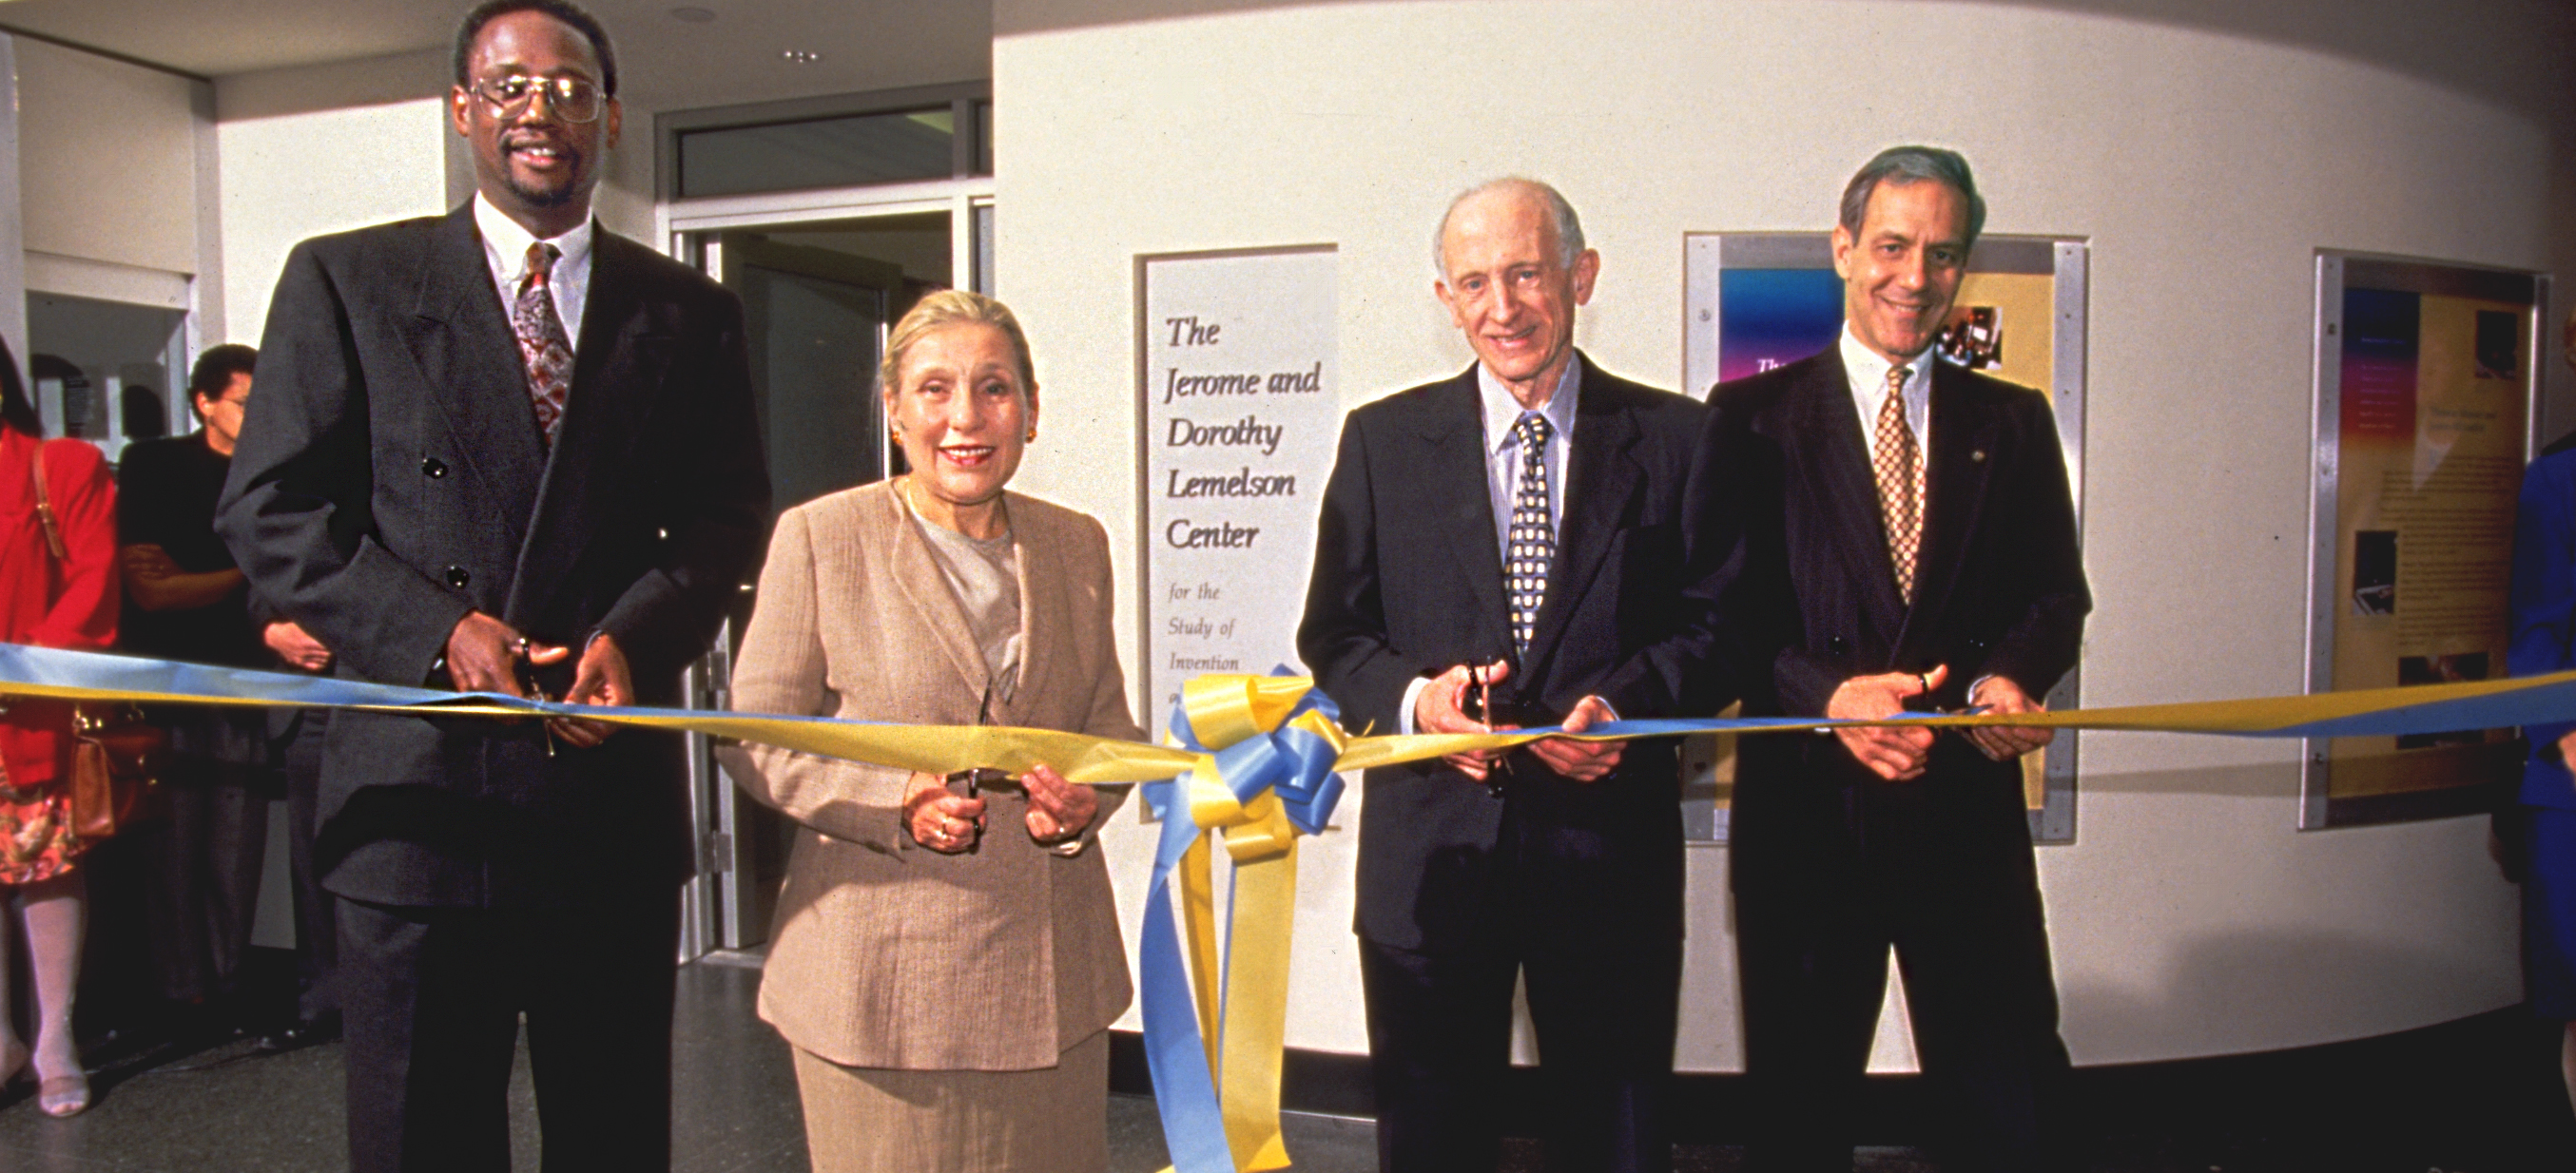 1995 Ribbon Cutting Ceremony Opening the Lemelson Center